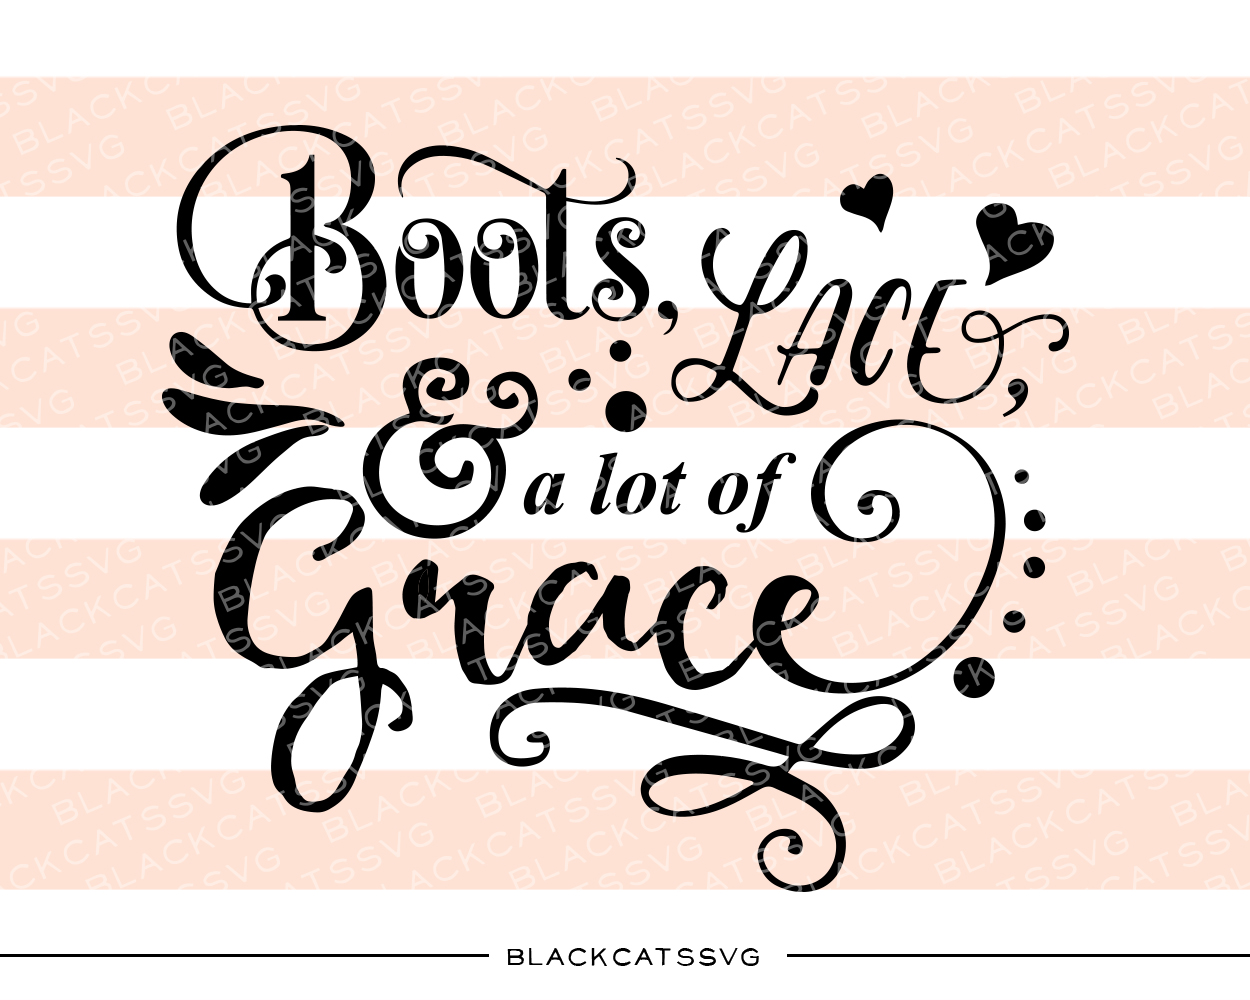 Boots, Lace & a Lot of Grace Cowgirl Craft Cut File By BlackCatsSVG